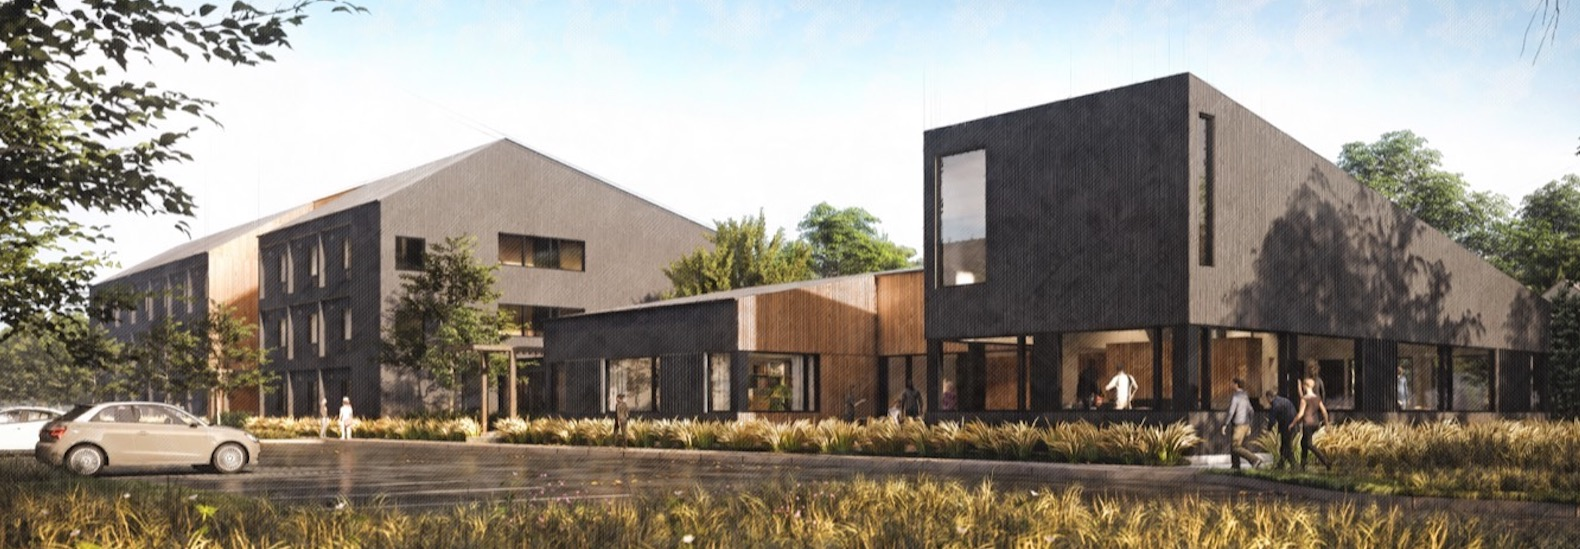 Beautiful modular homes raise the bar for affordable housing in Ontario